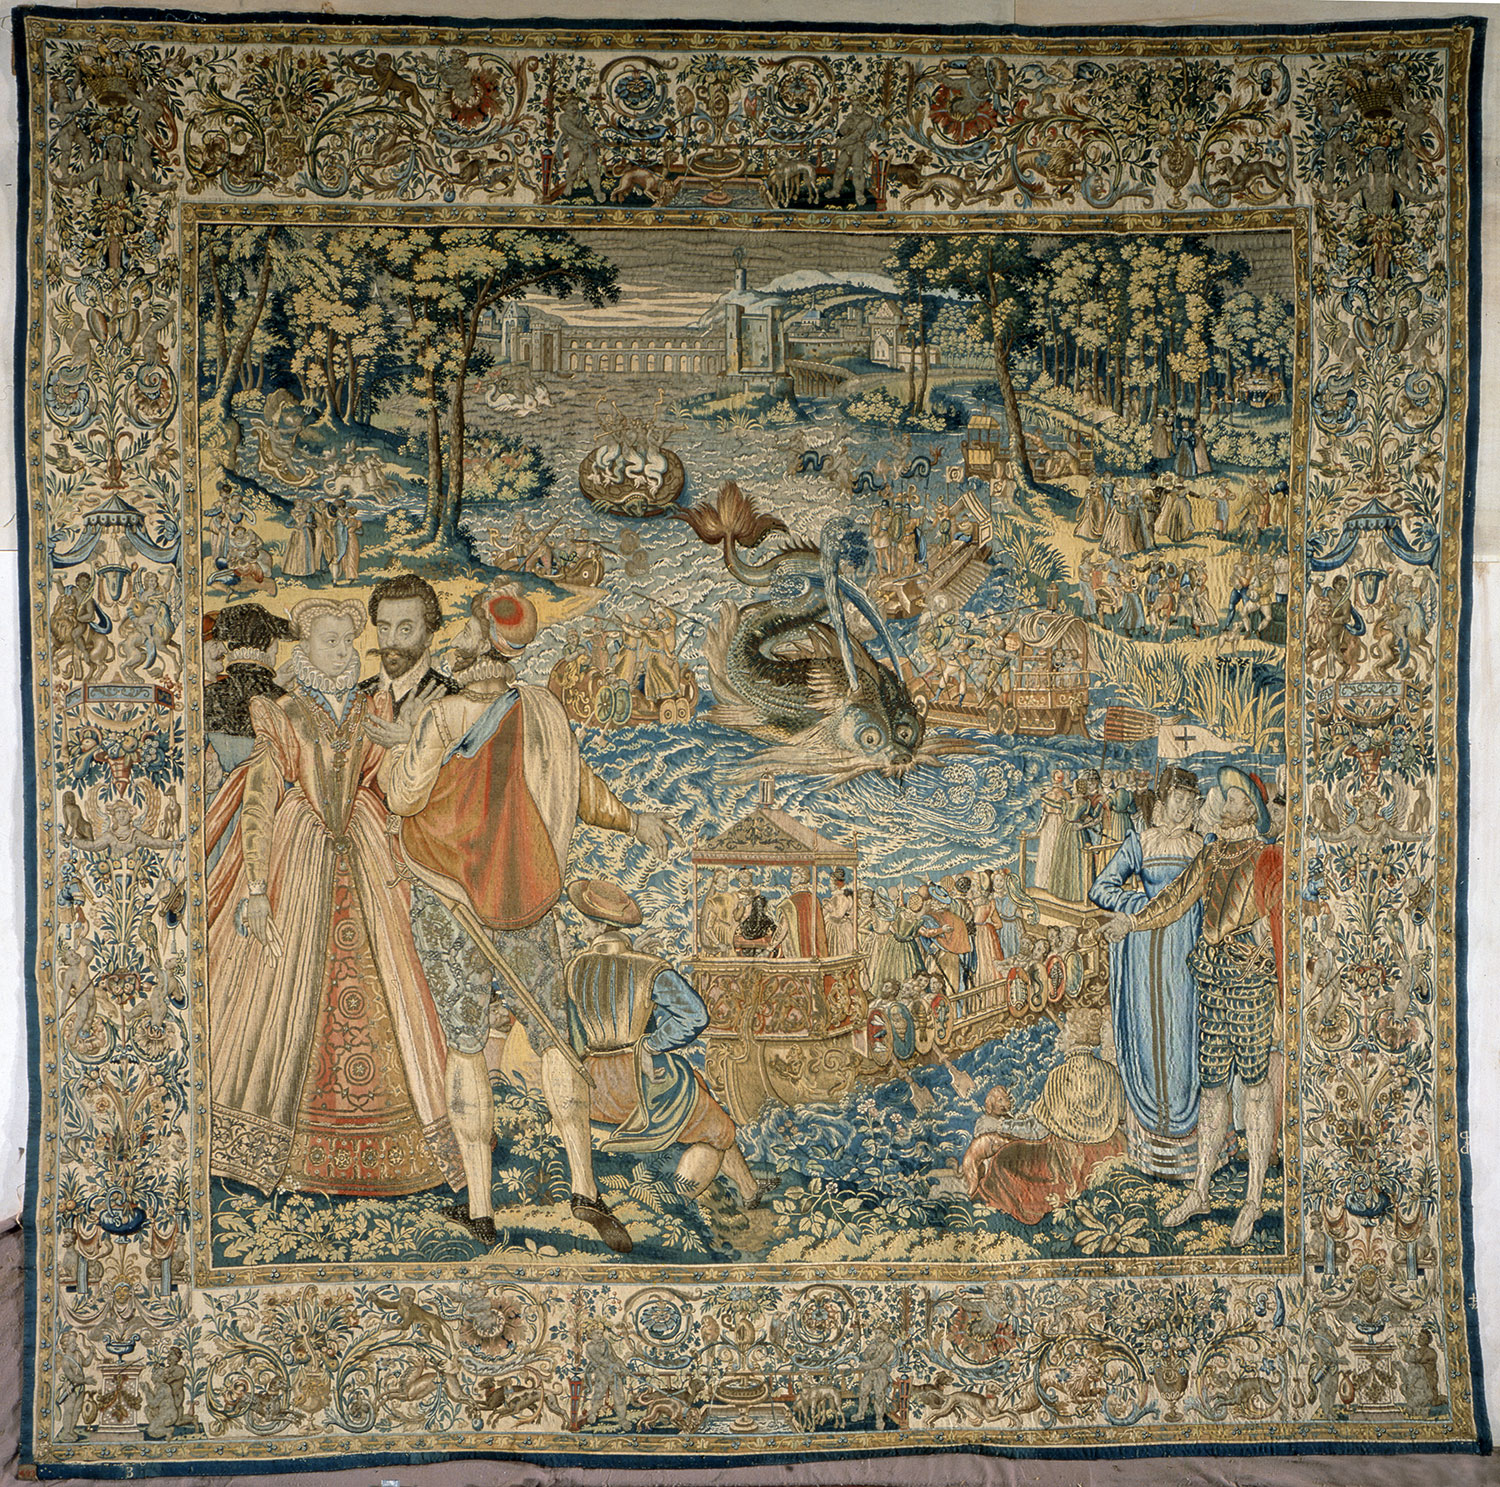 Tapiserija - Page 3 Valois_tapestry,_Water_Festival_at_Bayonne